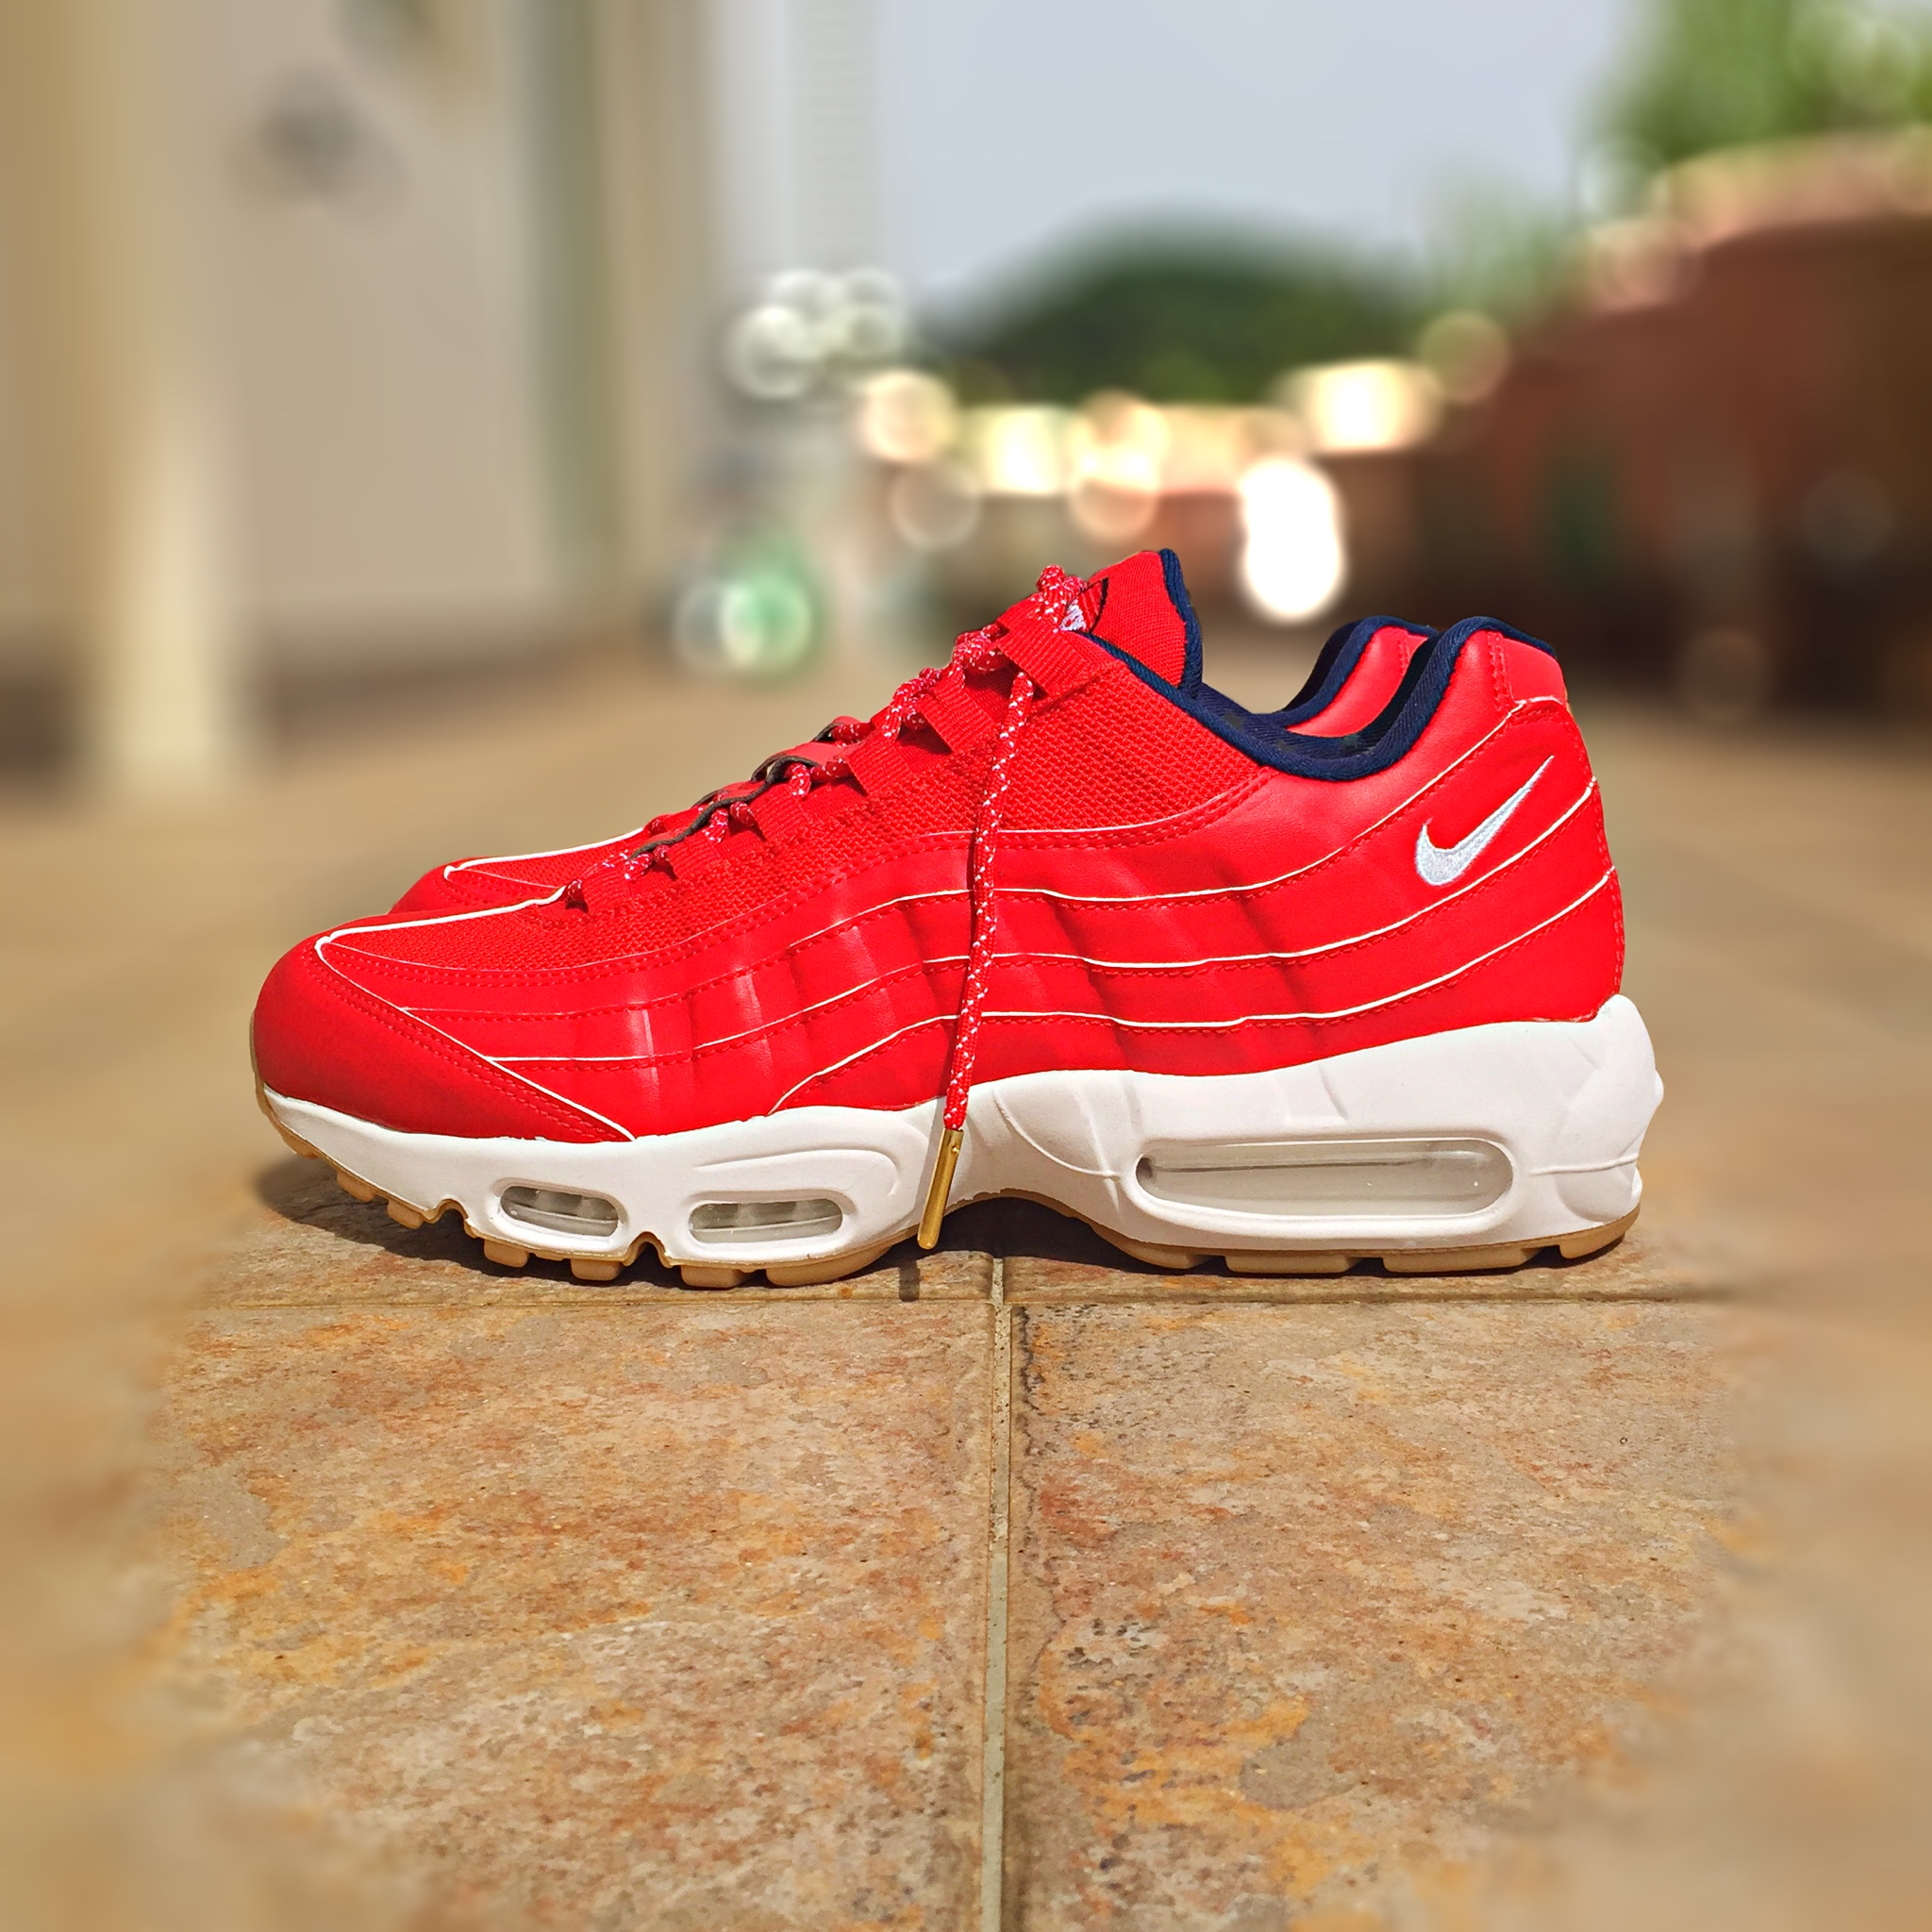 size 40 1b58a 2ccd4 Nike Air Max 95  Independence Day  - US 10.5, Sports on Carousell